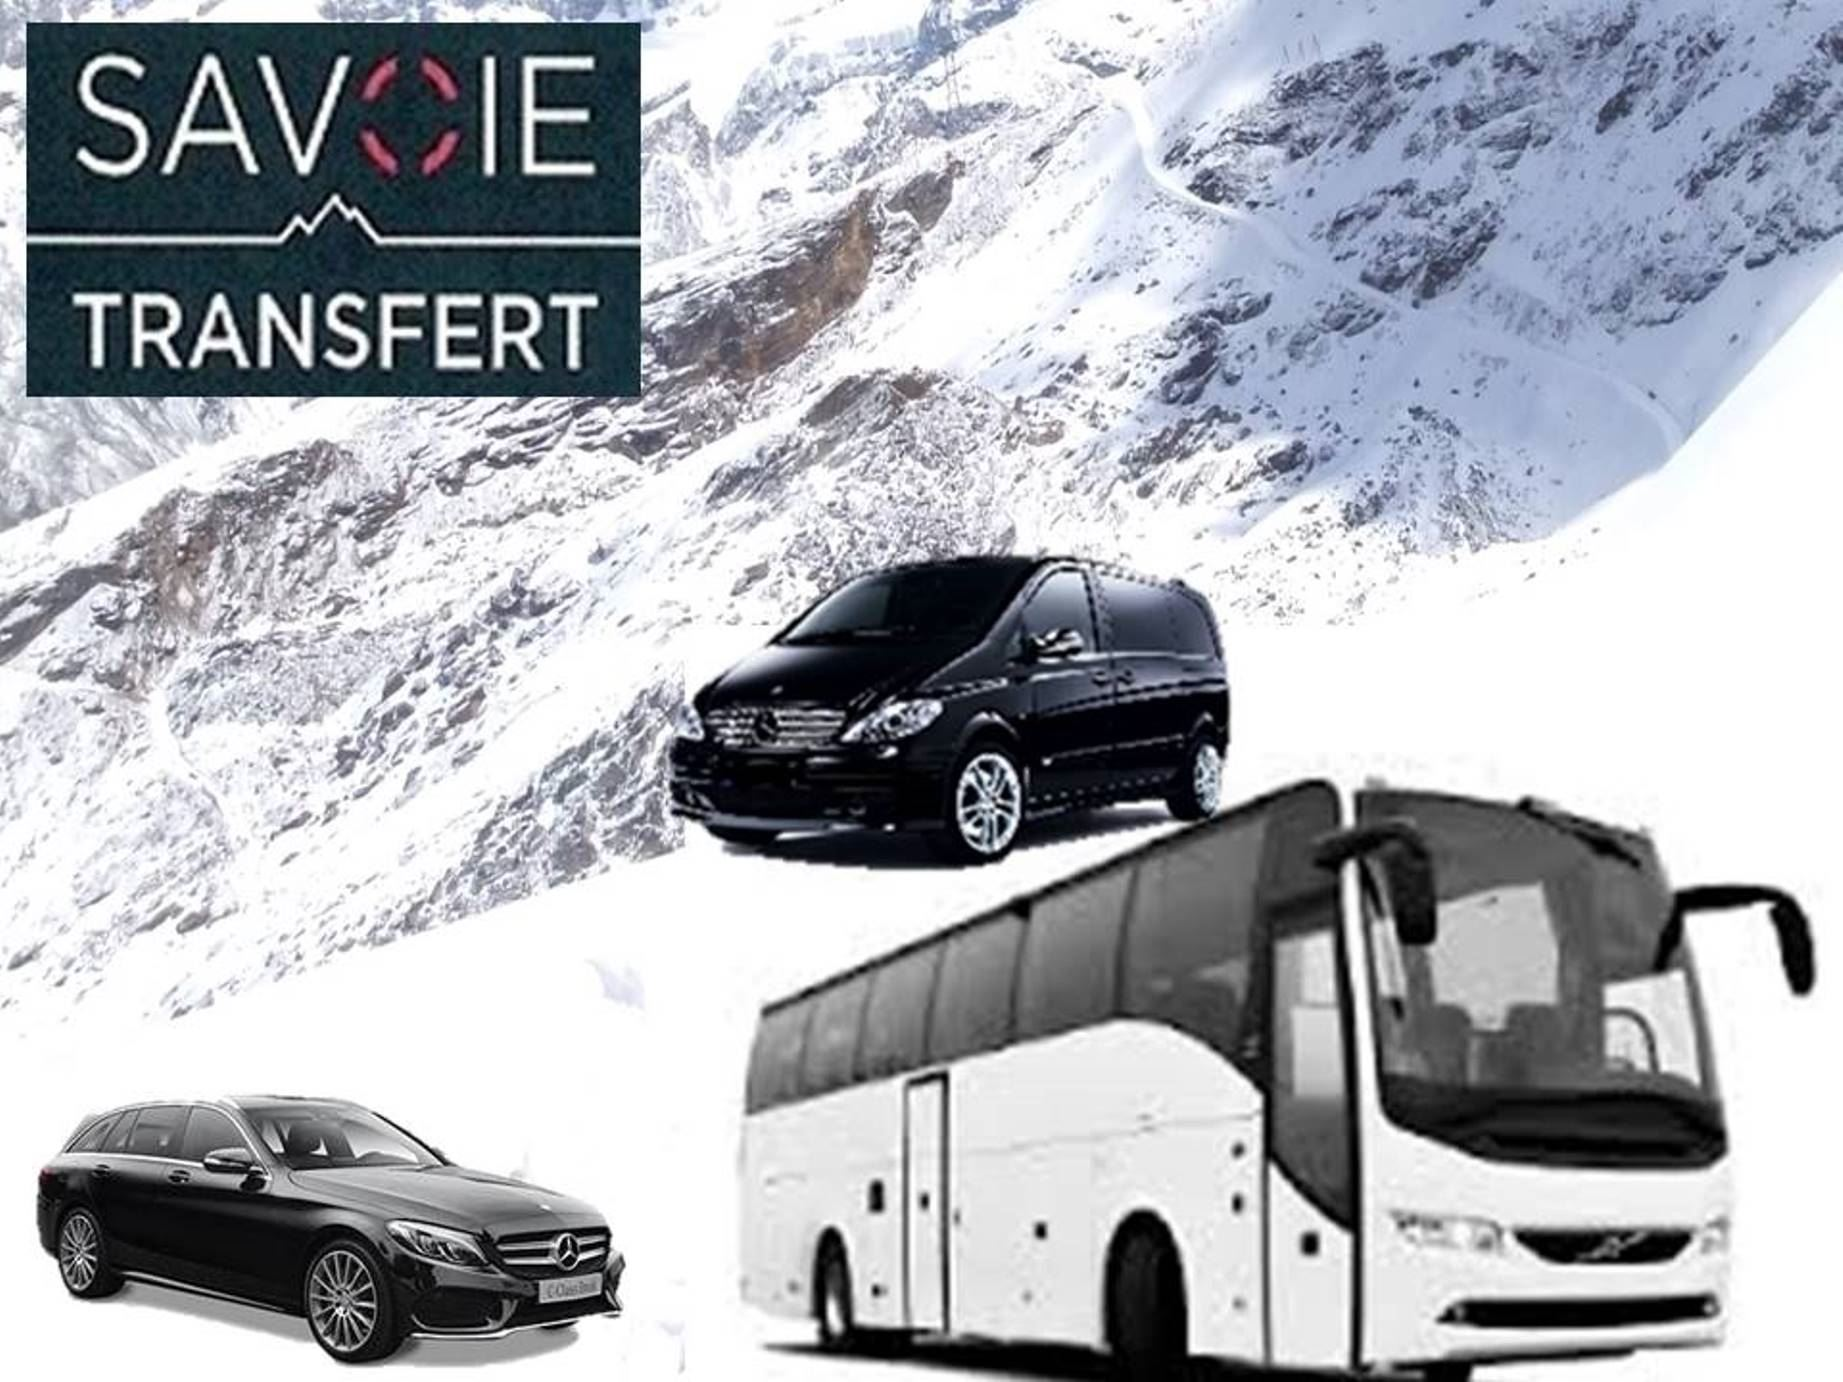 PRIVATE TRANSFER from LYON STATIONS with VAL THORENS TRANSFERT